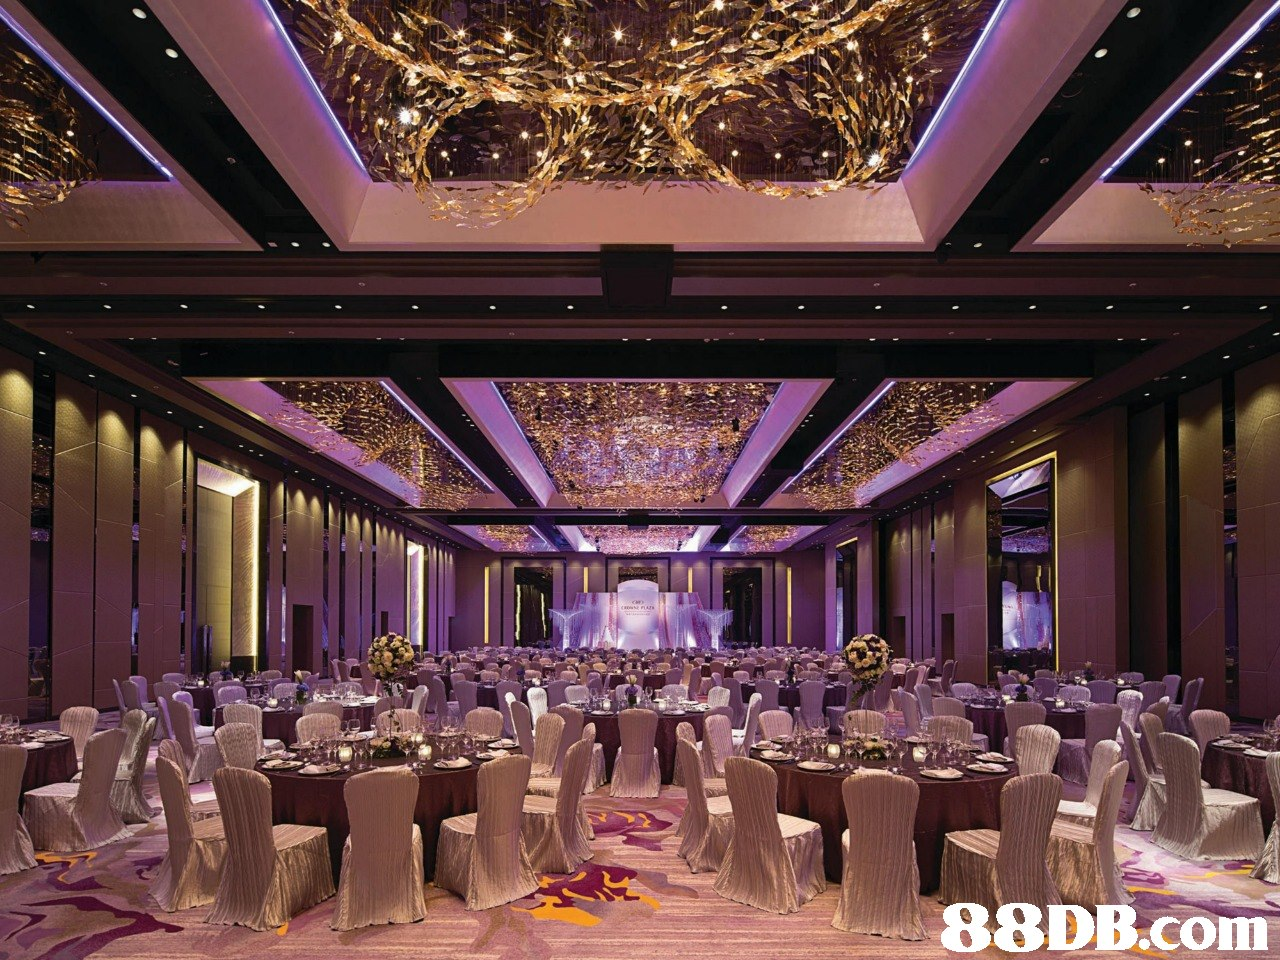 function hall,ballroom,ceremony,wedding reception,restaurant